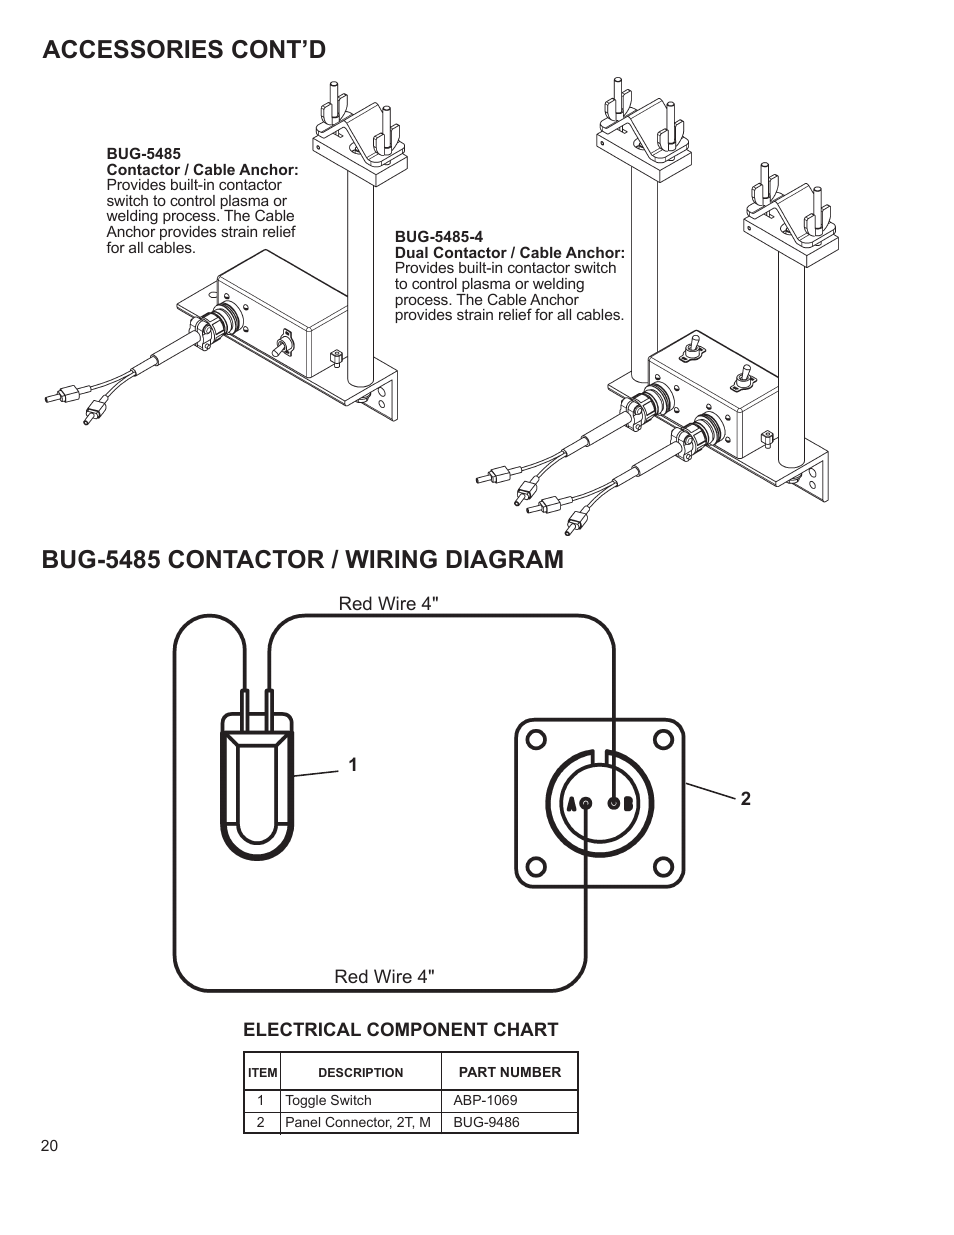 Accessories Contd Bug 5485 Contactor Wiring Diagram O Of Welding Process Systems Go Fer Iii Ox User Manual Page 20 22